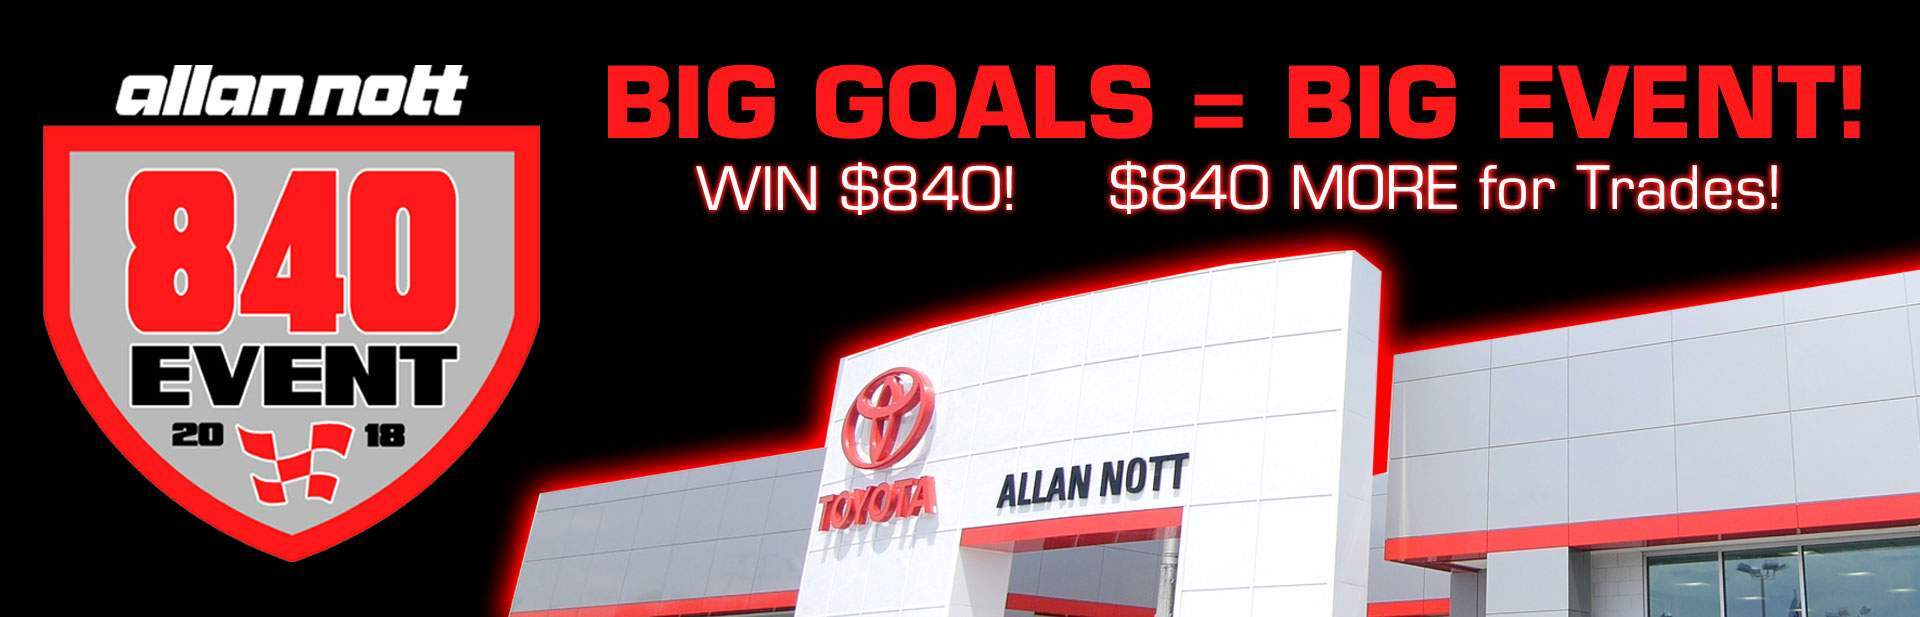 The 840 Event is going on NOW at Allan Nott Toyota!